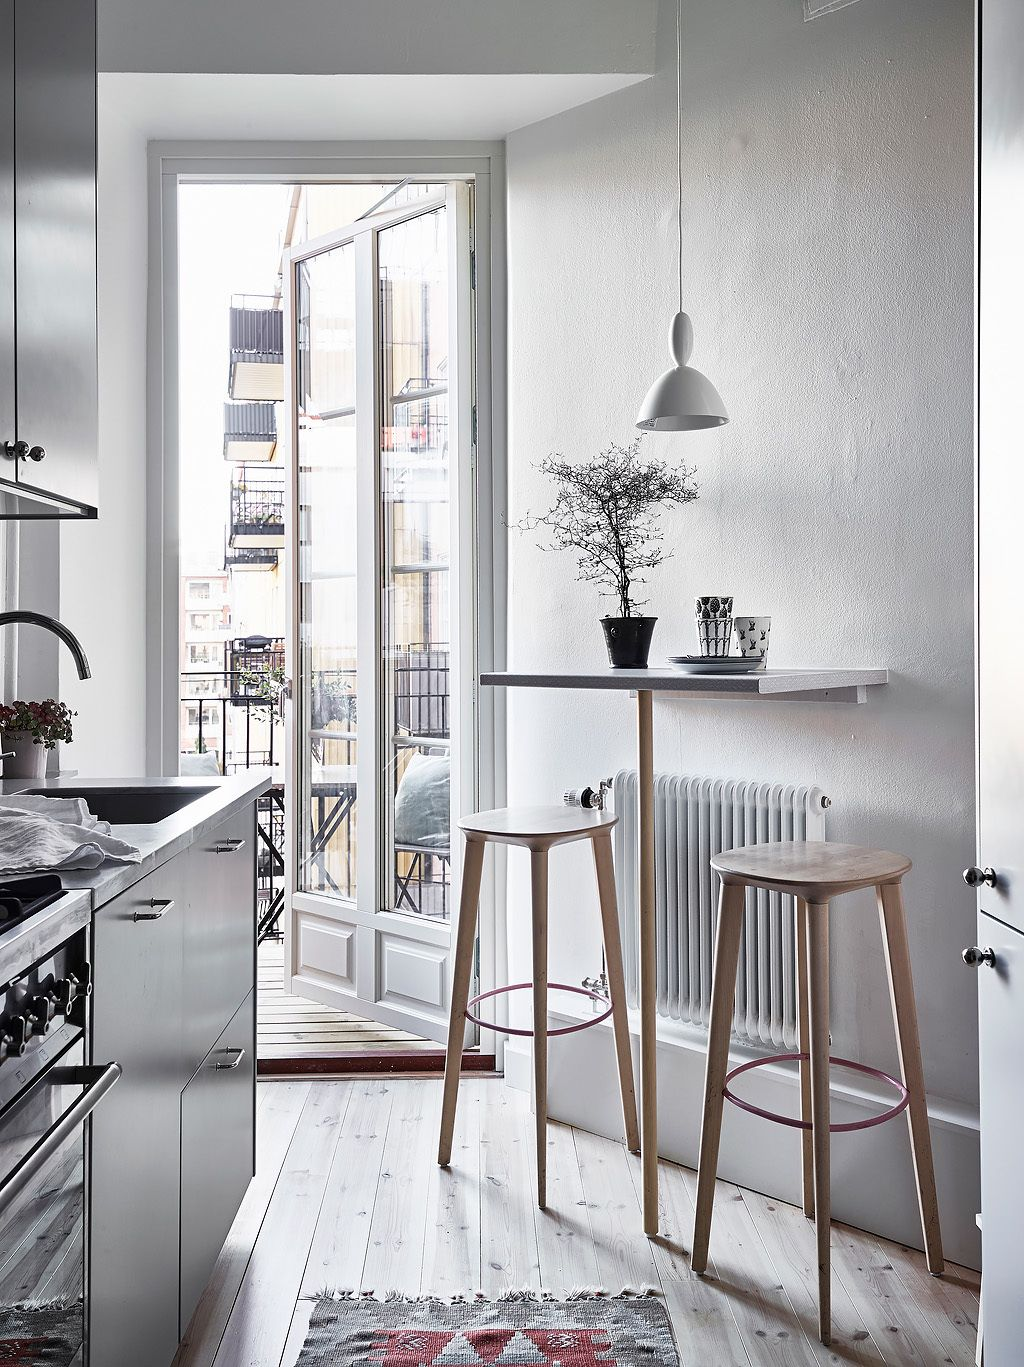 Tiny bar table for a small kitchen | INTERIORS | Scandi ...